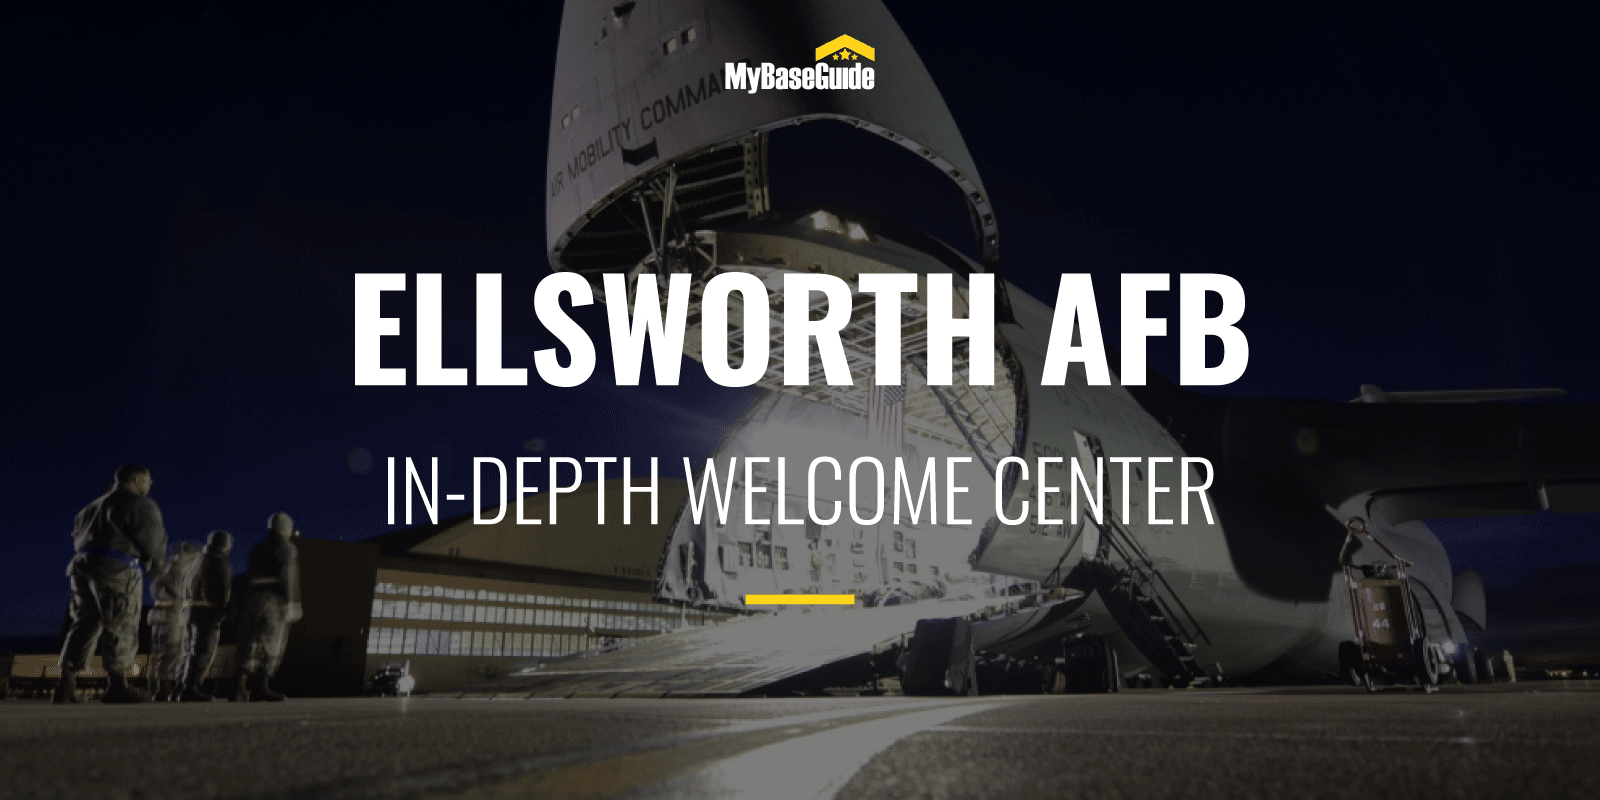 Ellsworth Air Force Base: In-Depth Welcome Center